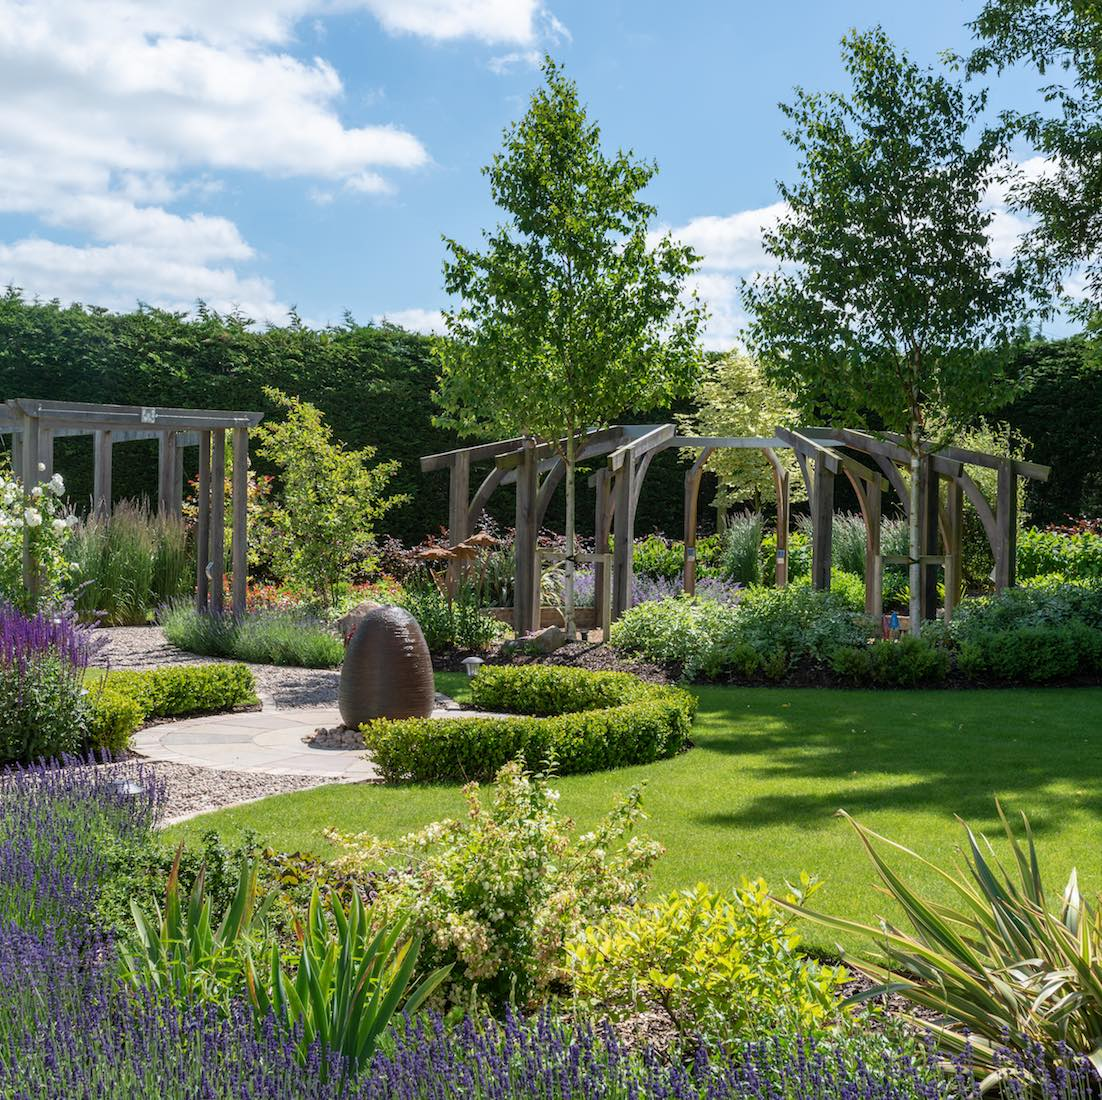 Old Wenden Grange Garden Design and Build, Saffron Walden